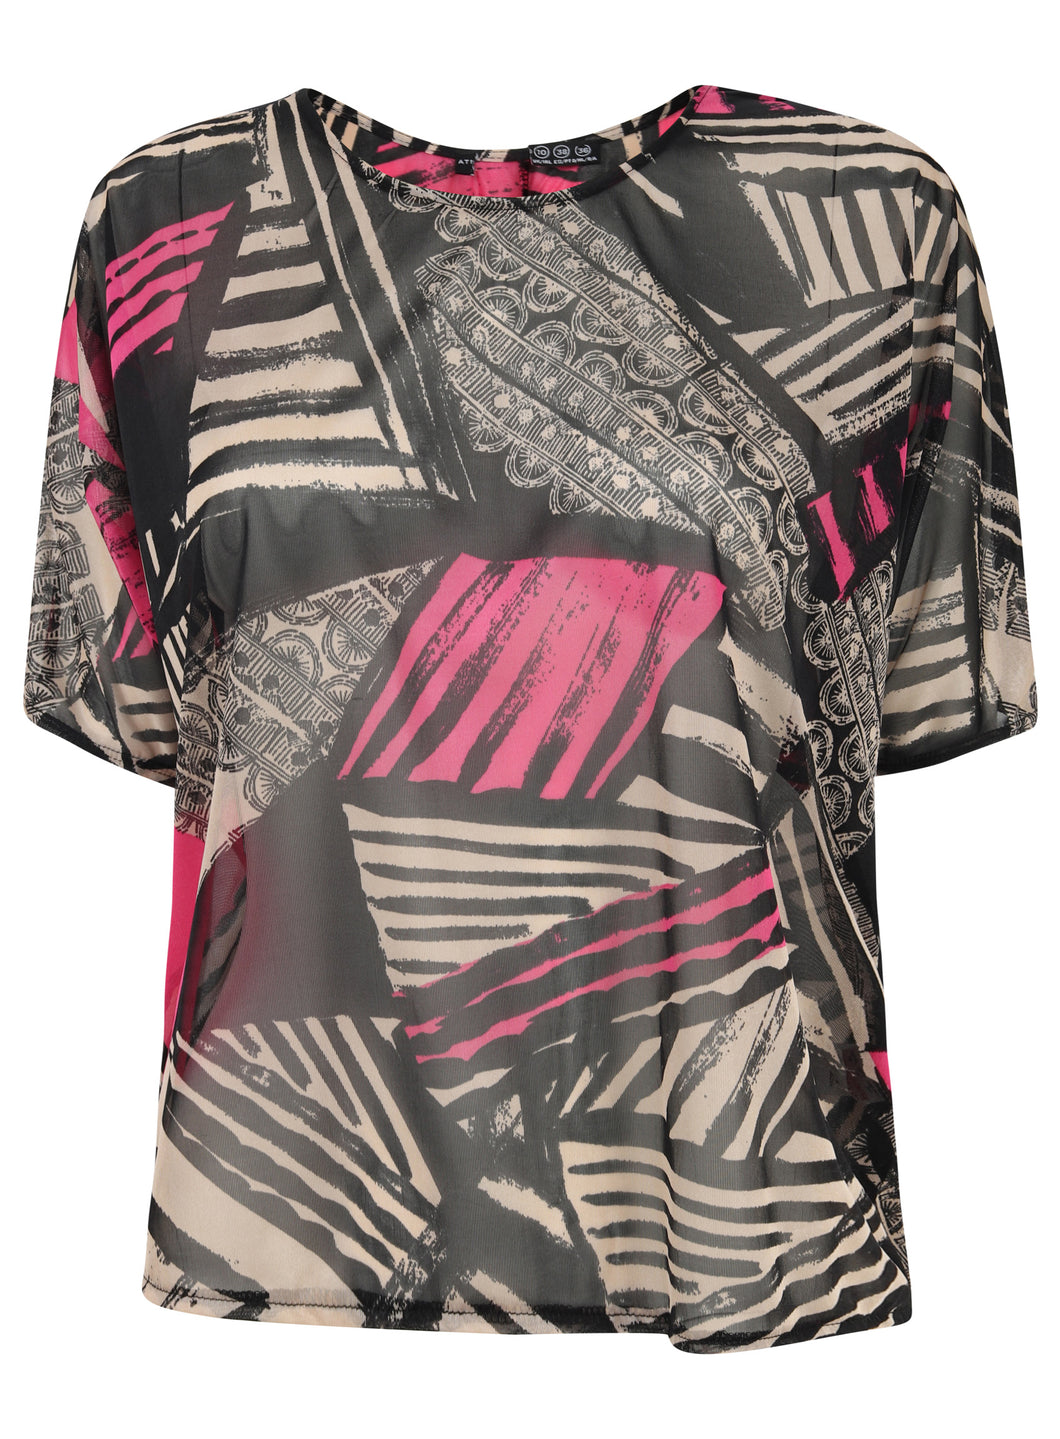 Short Sleeve Aztec Print Sheer Clear Blouse Top